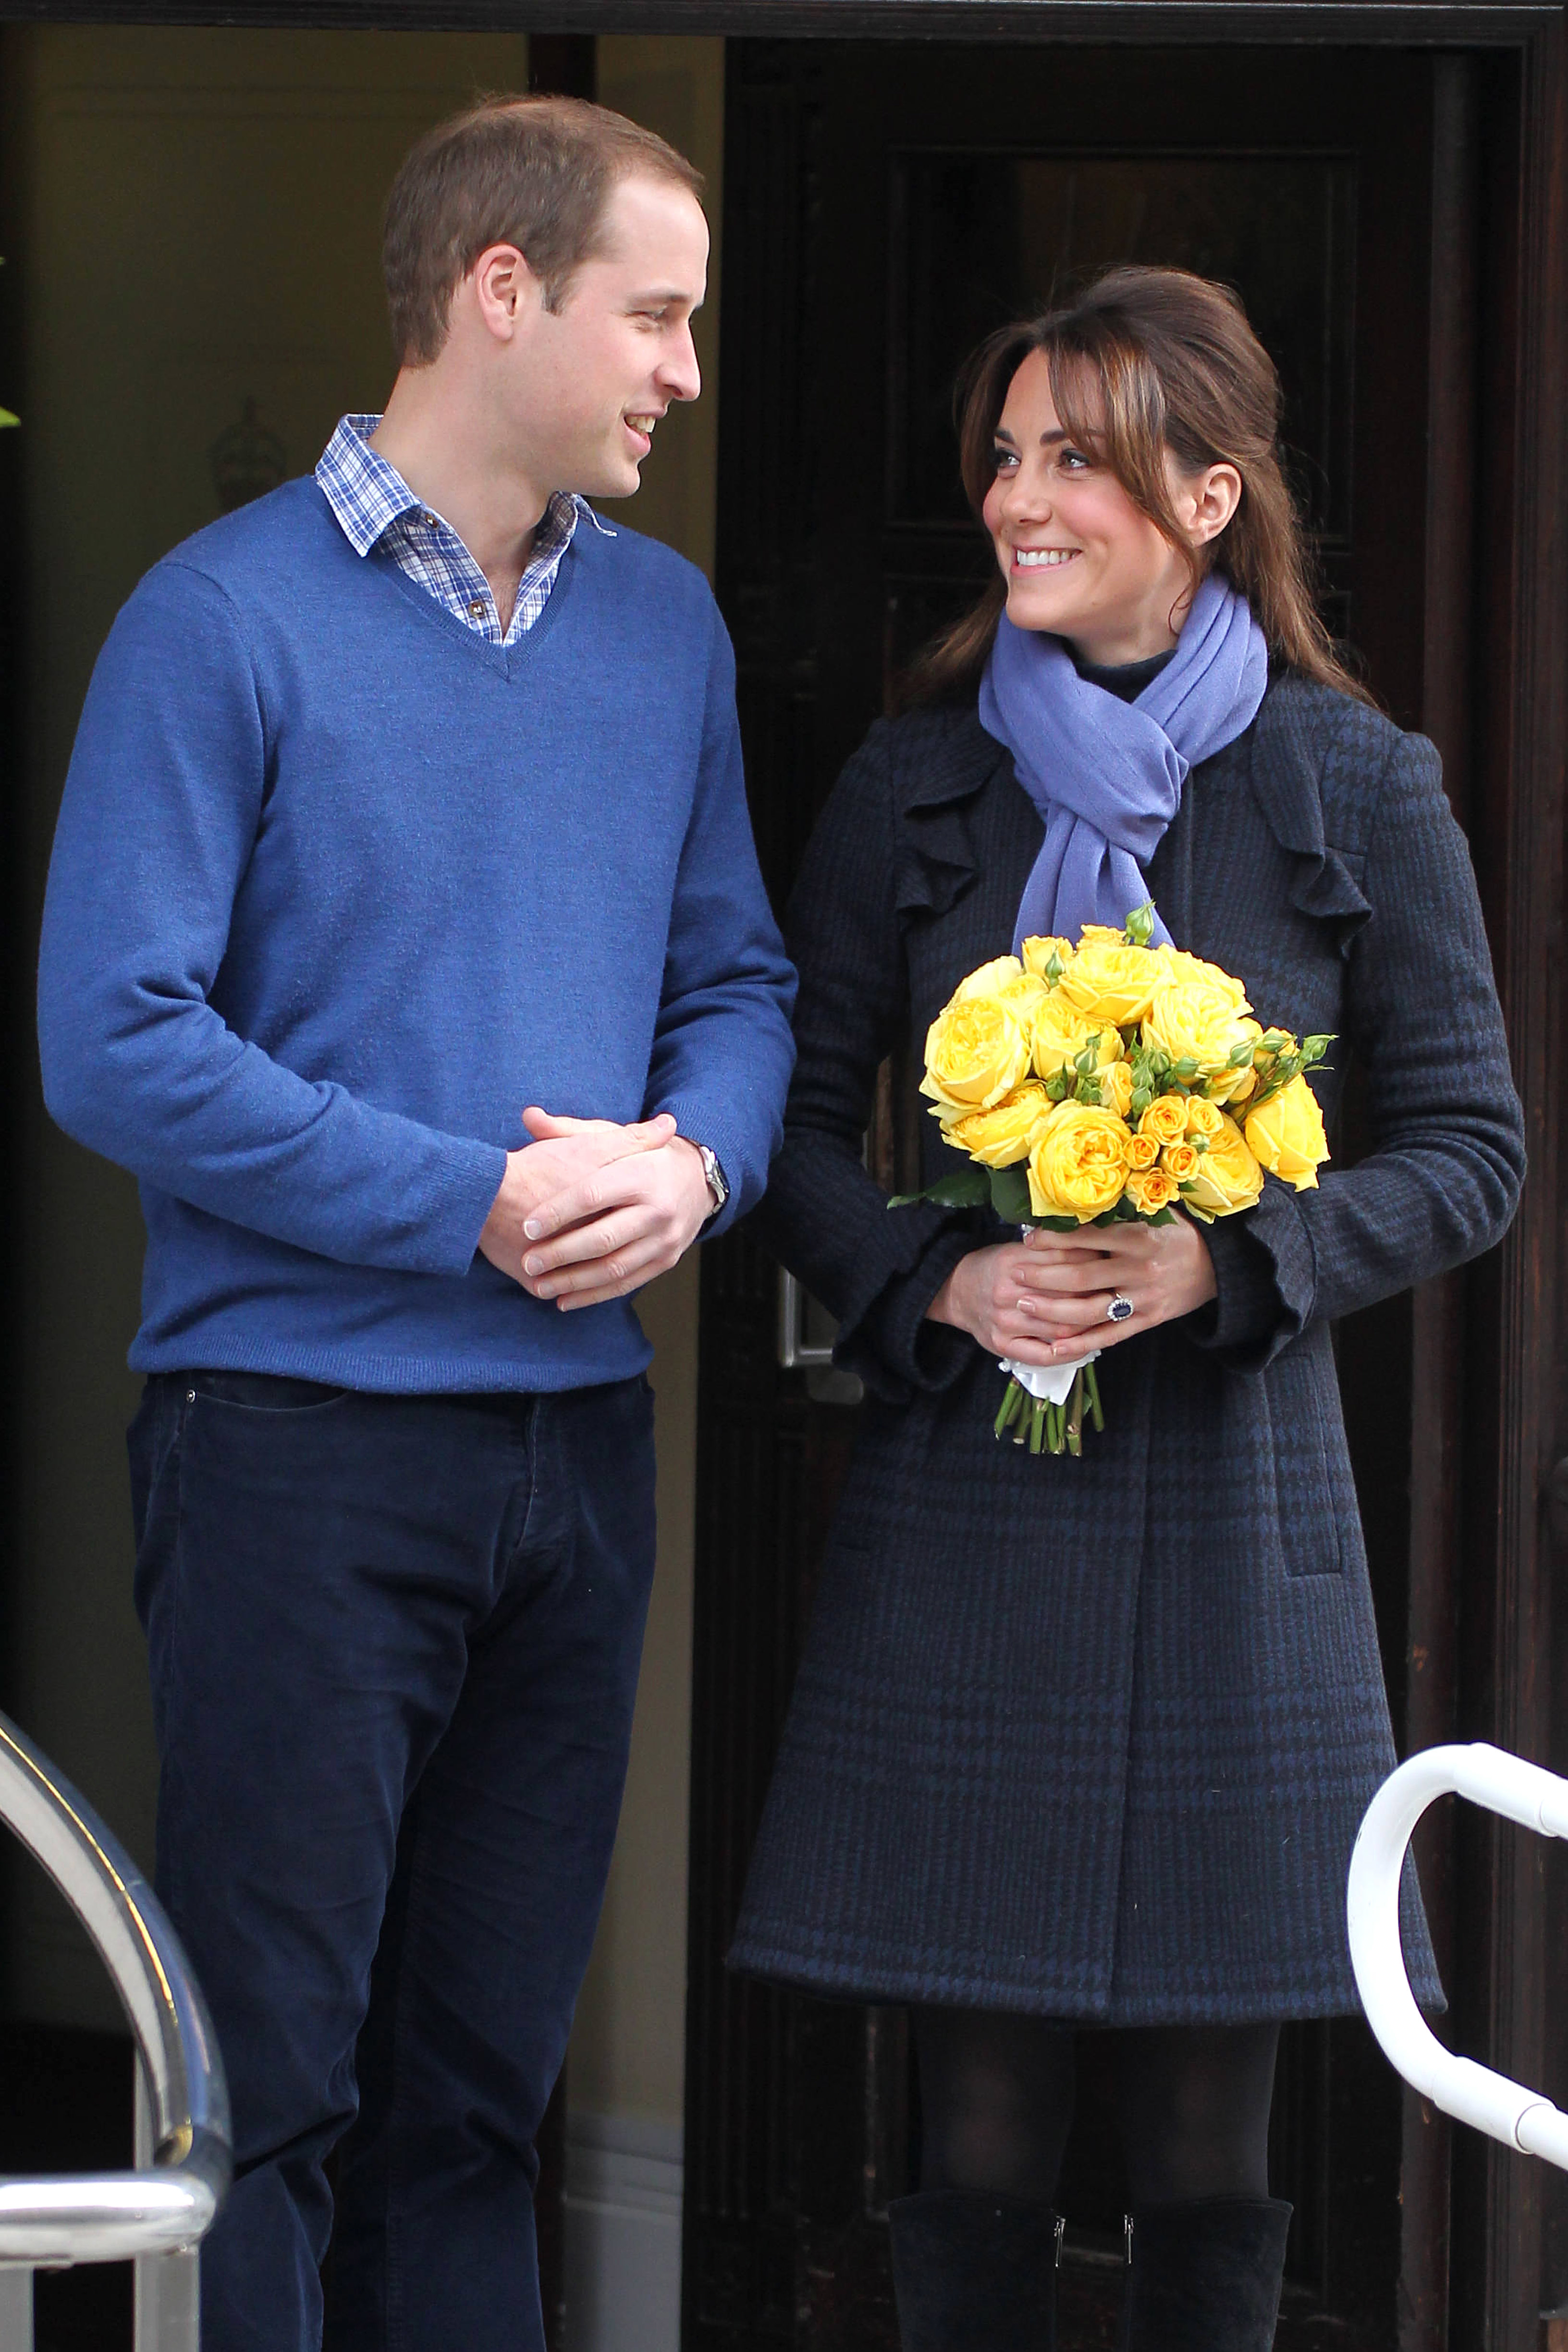 parenting advice for Prince William and Kate Middleton